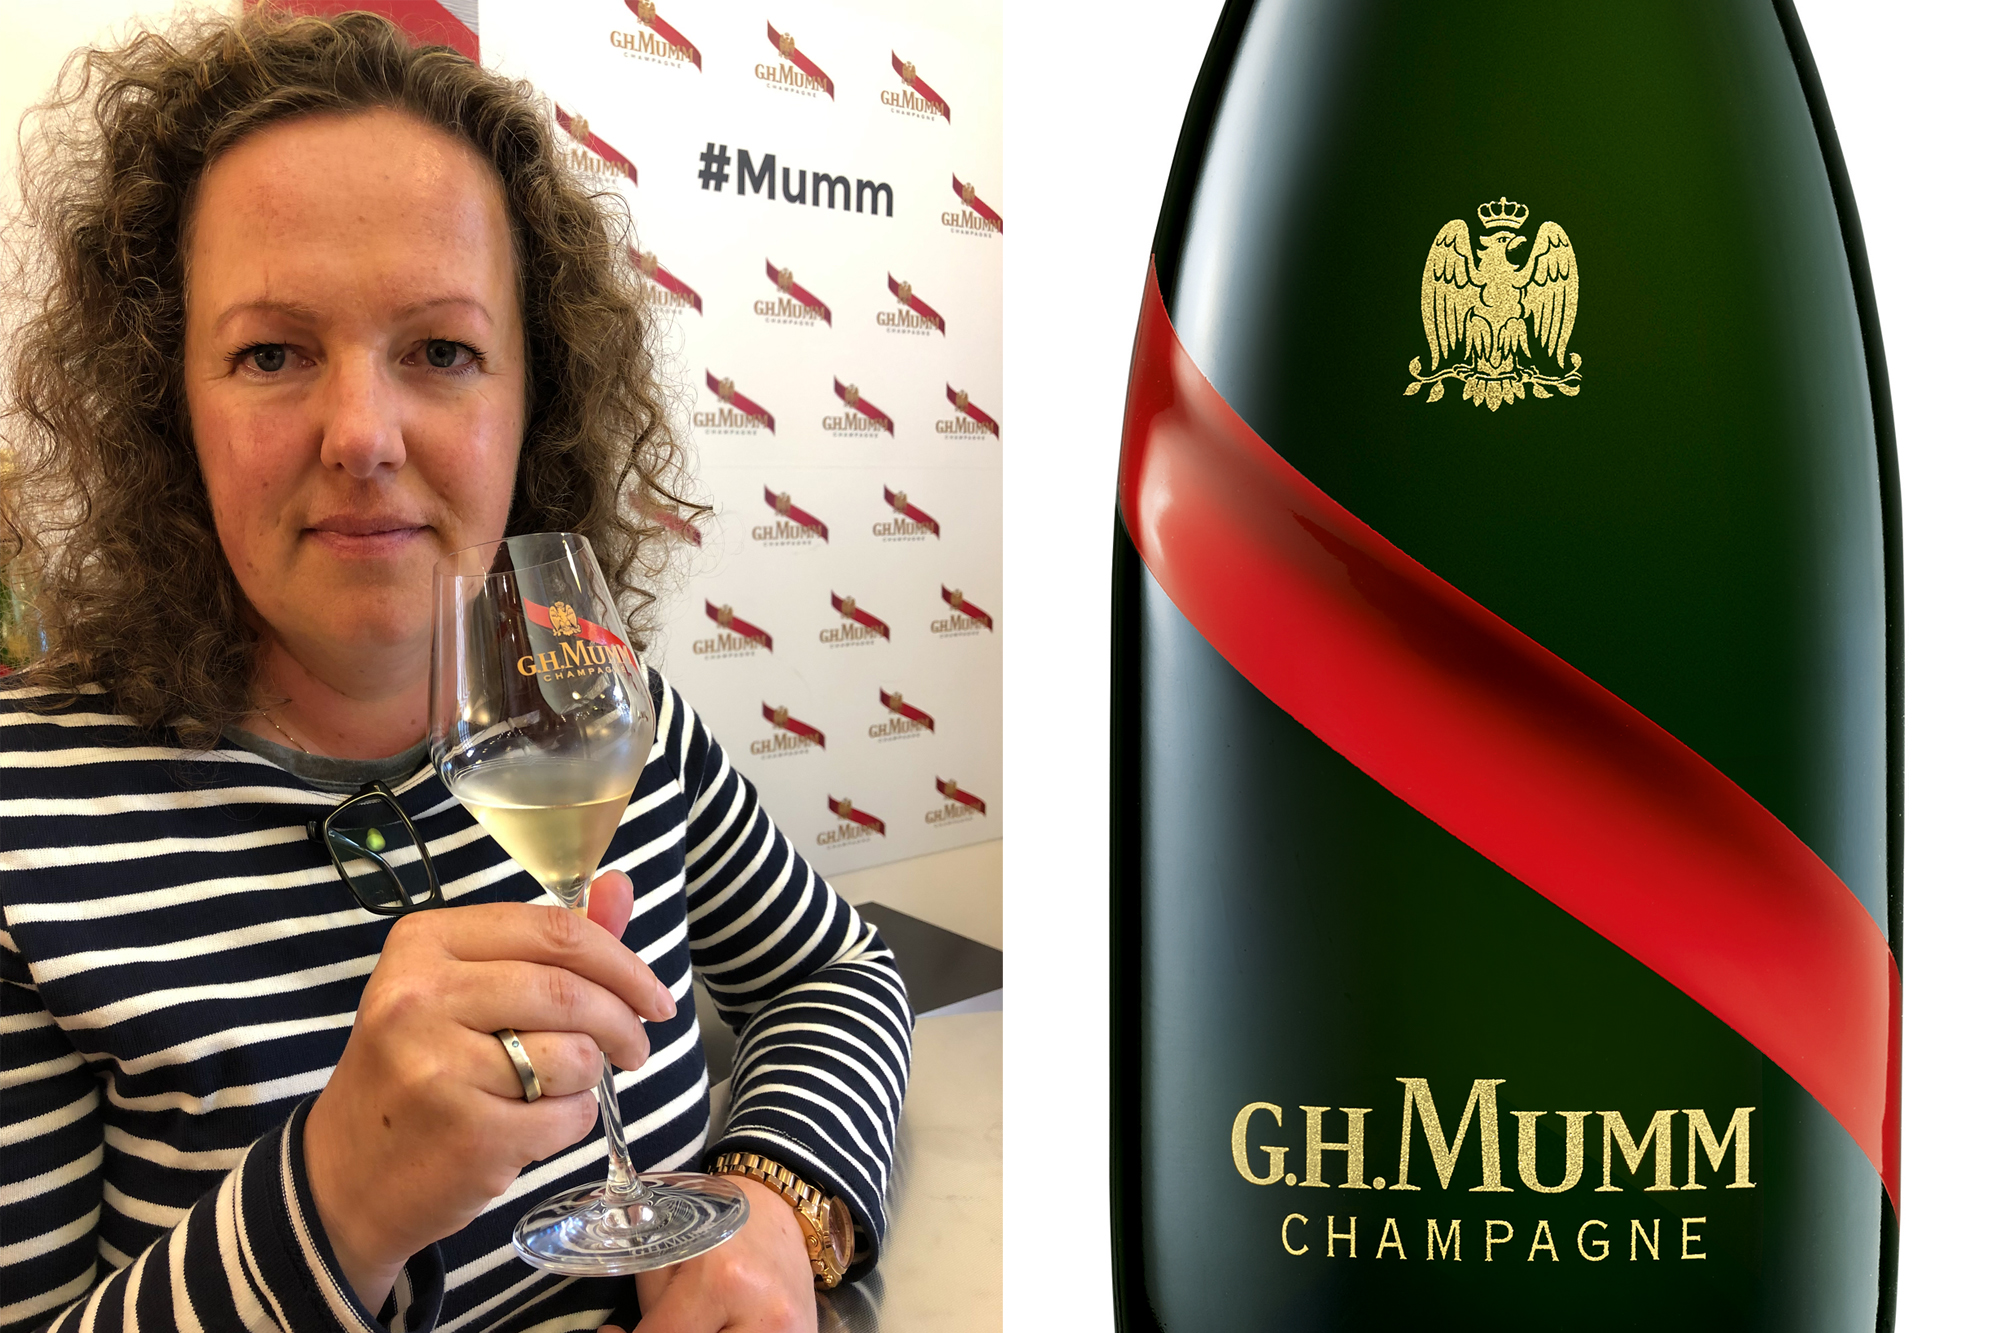 Lotte bij Mumm Champagne in Reims